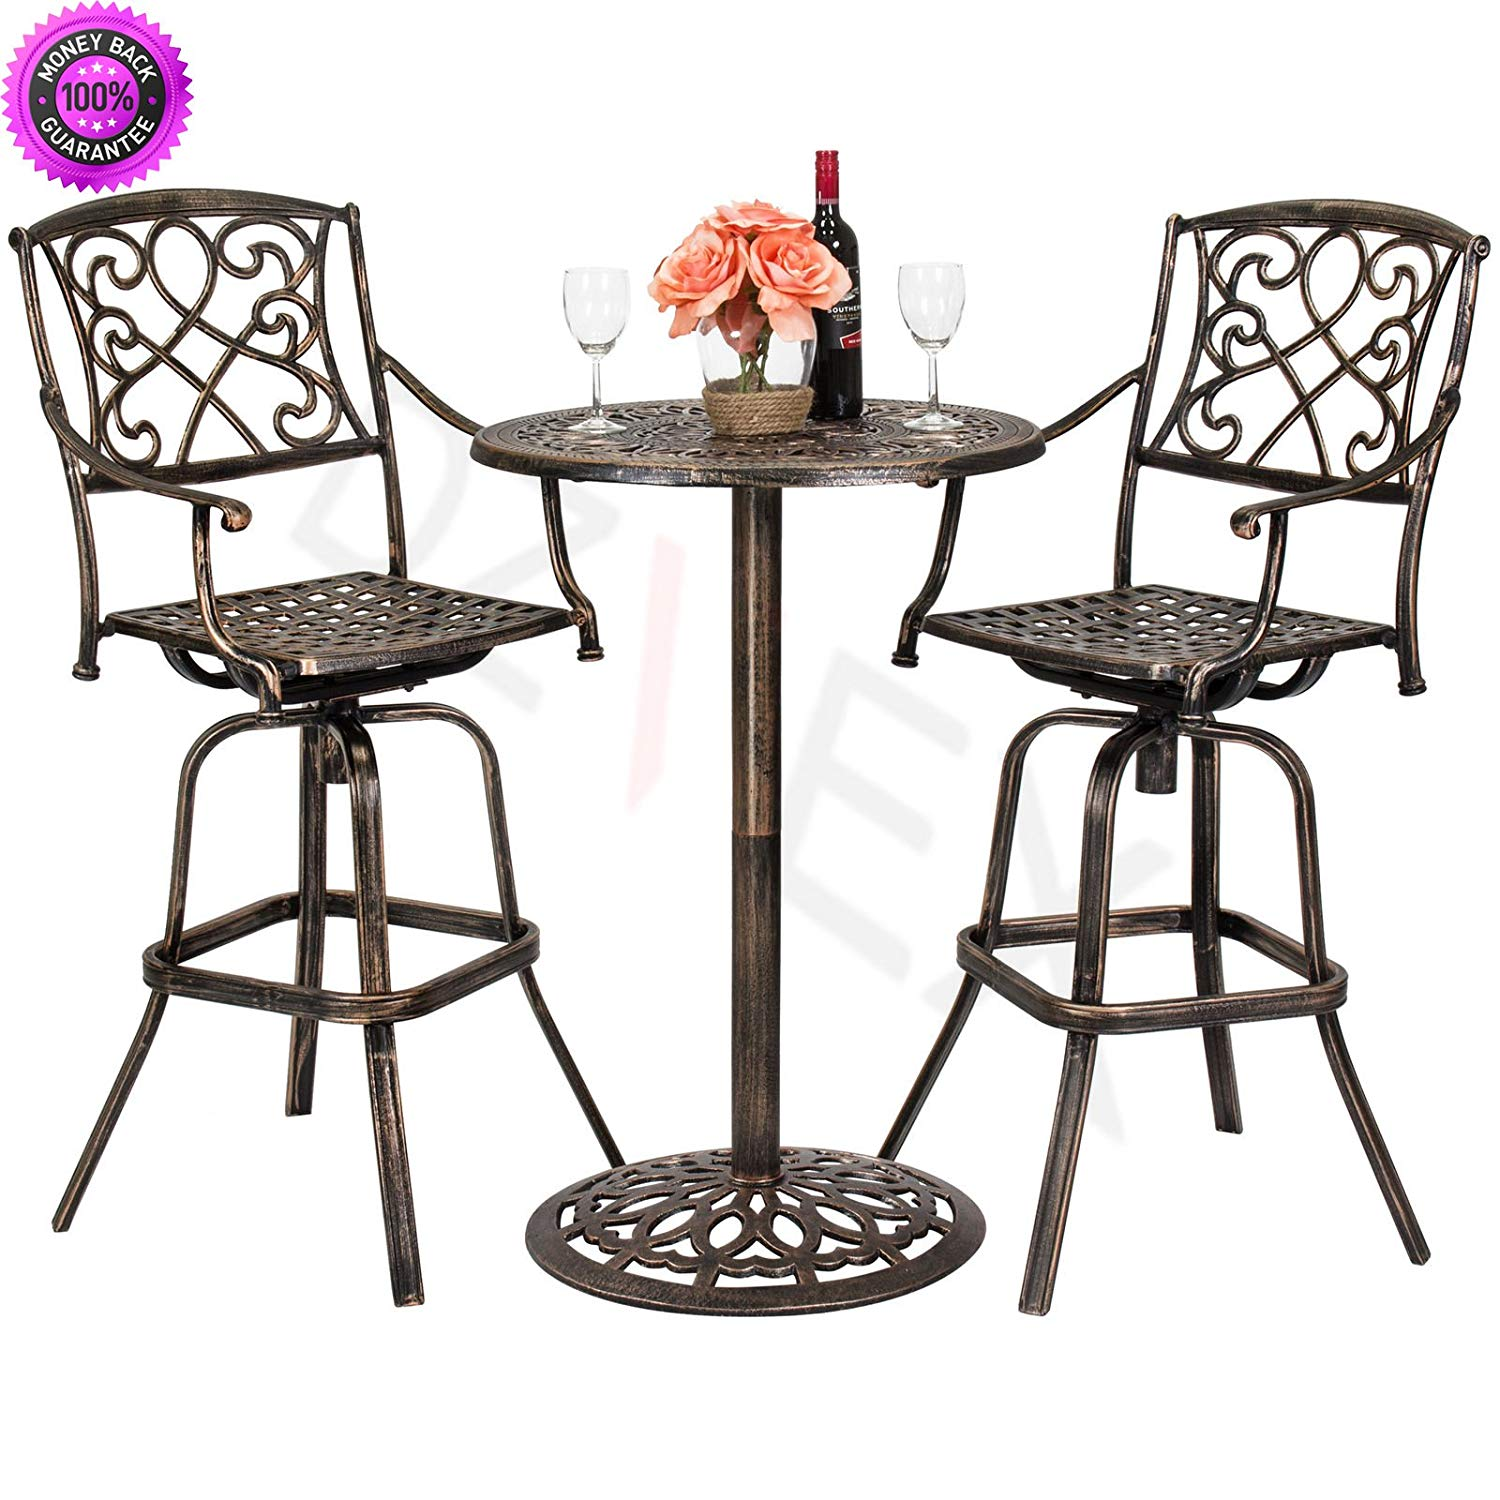 Outdoor Furniture Dining Set Sale Cheap Outdoor Table Sets Sale Find Outdoor Table Sets Sale Deals